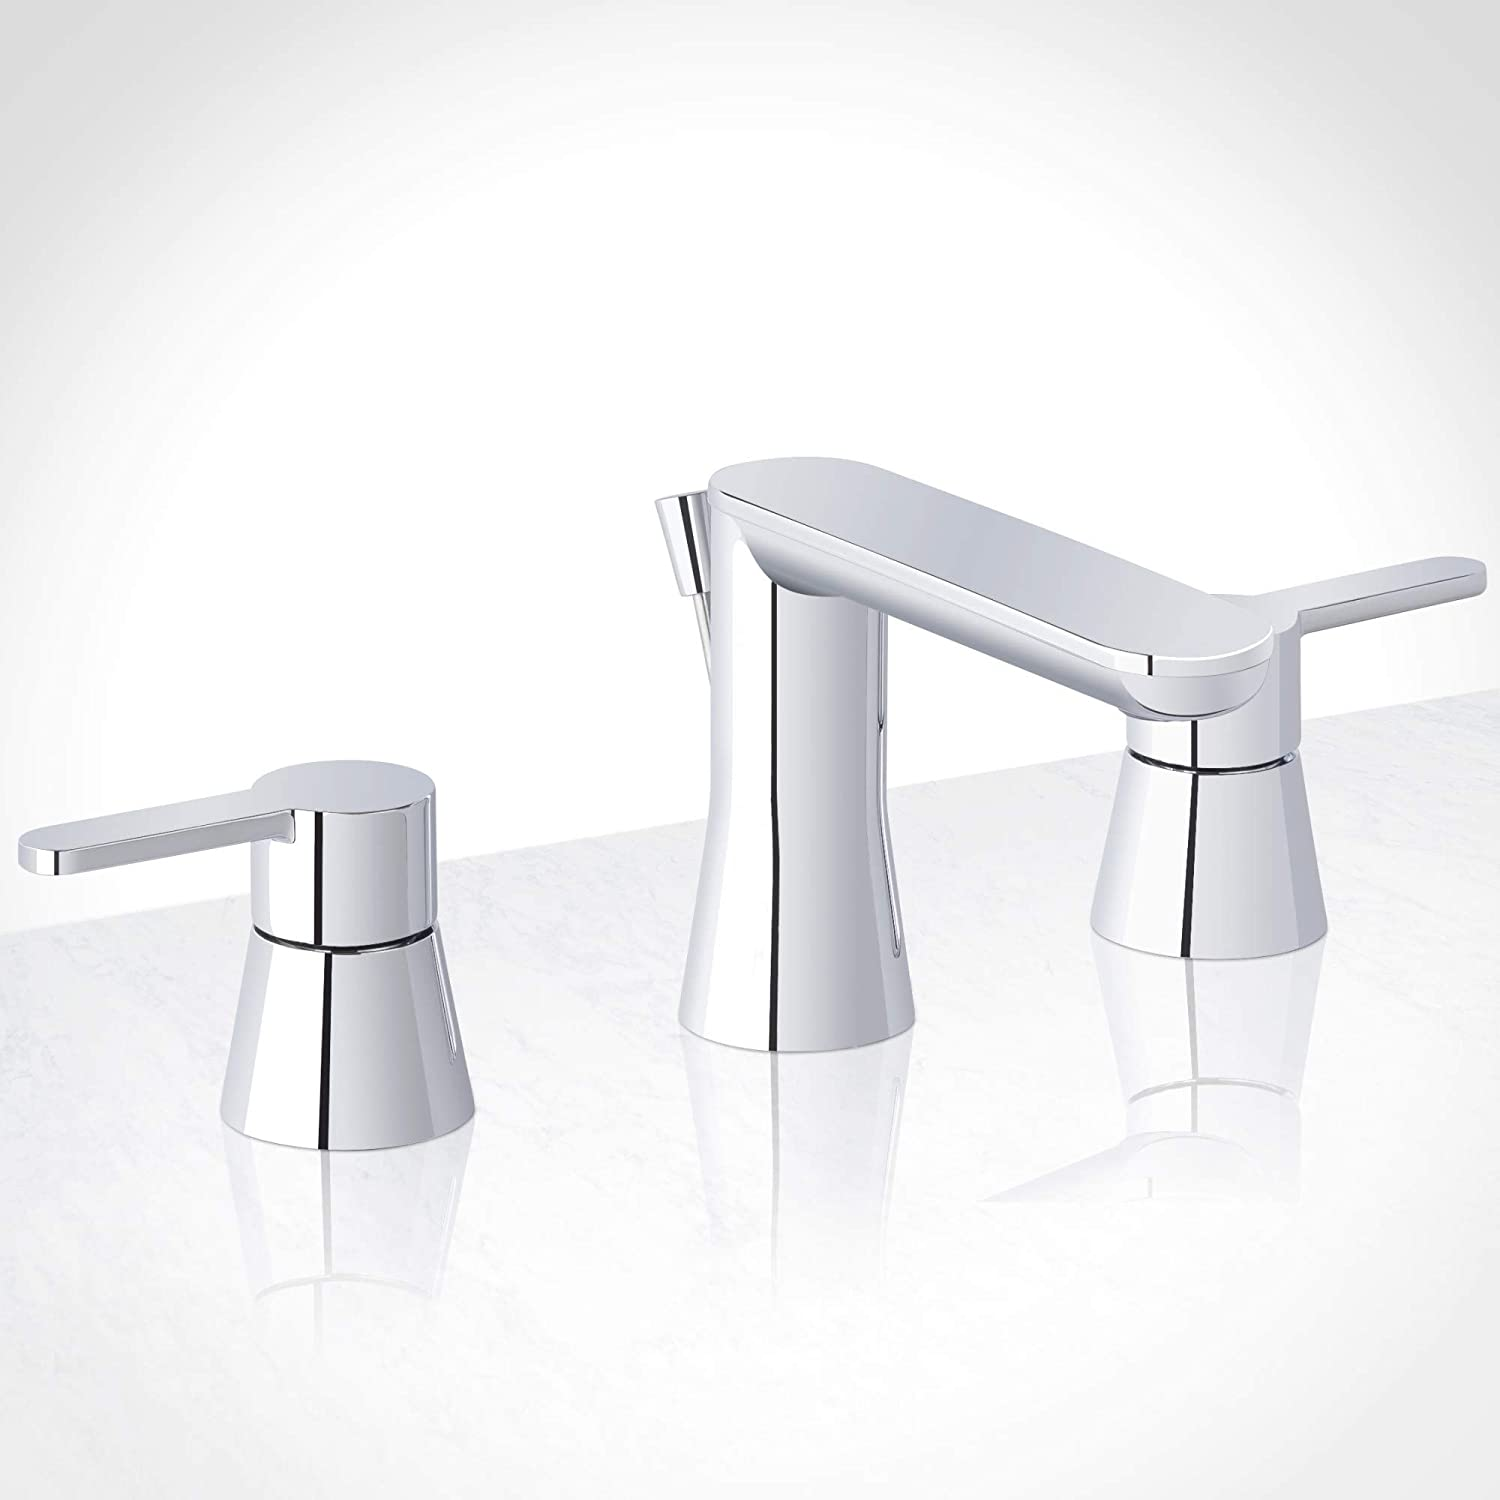 Miseno ML361 Mia-G Widespread Bathroom Faucet - Includes Pop-Up Drain Assembly